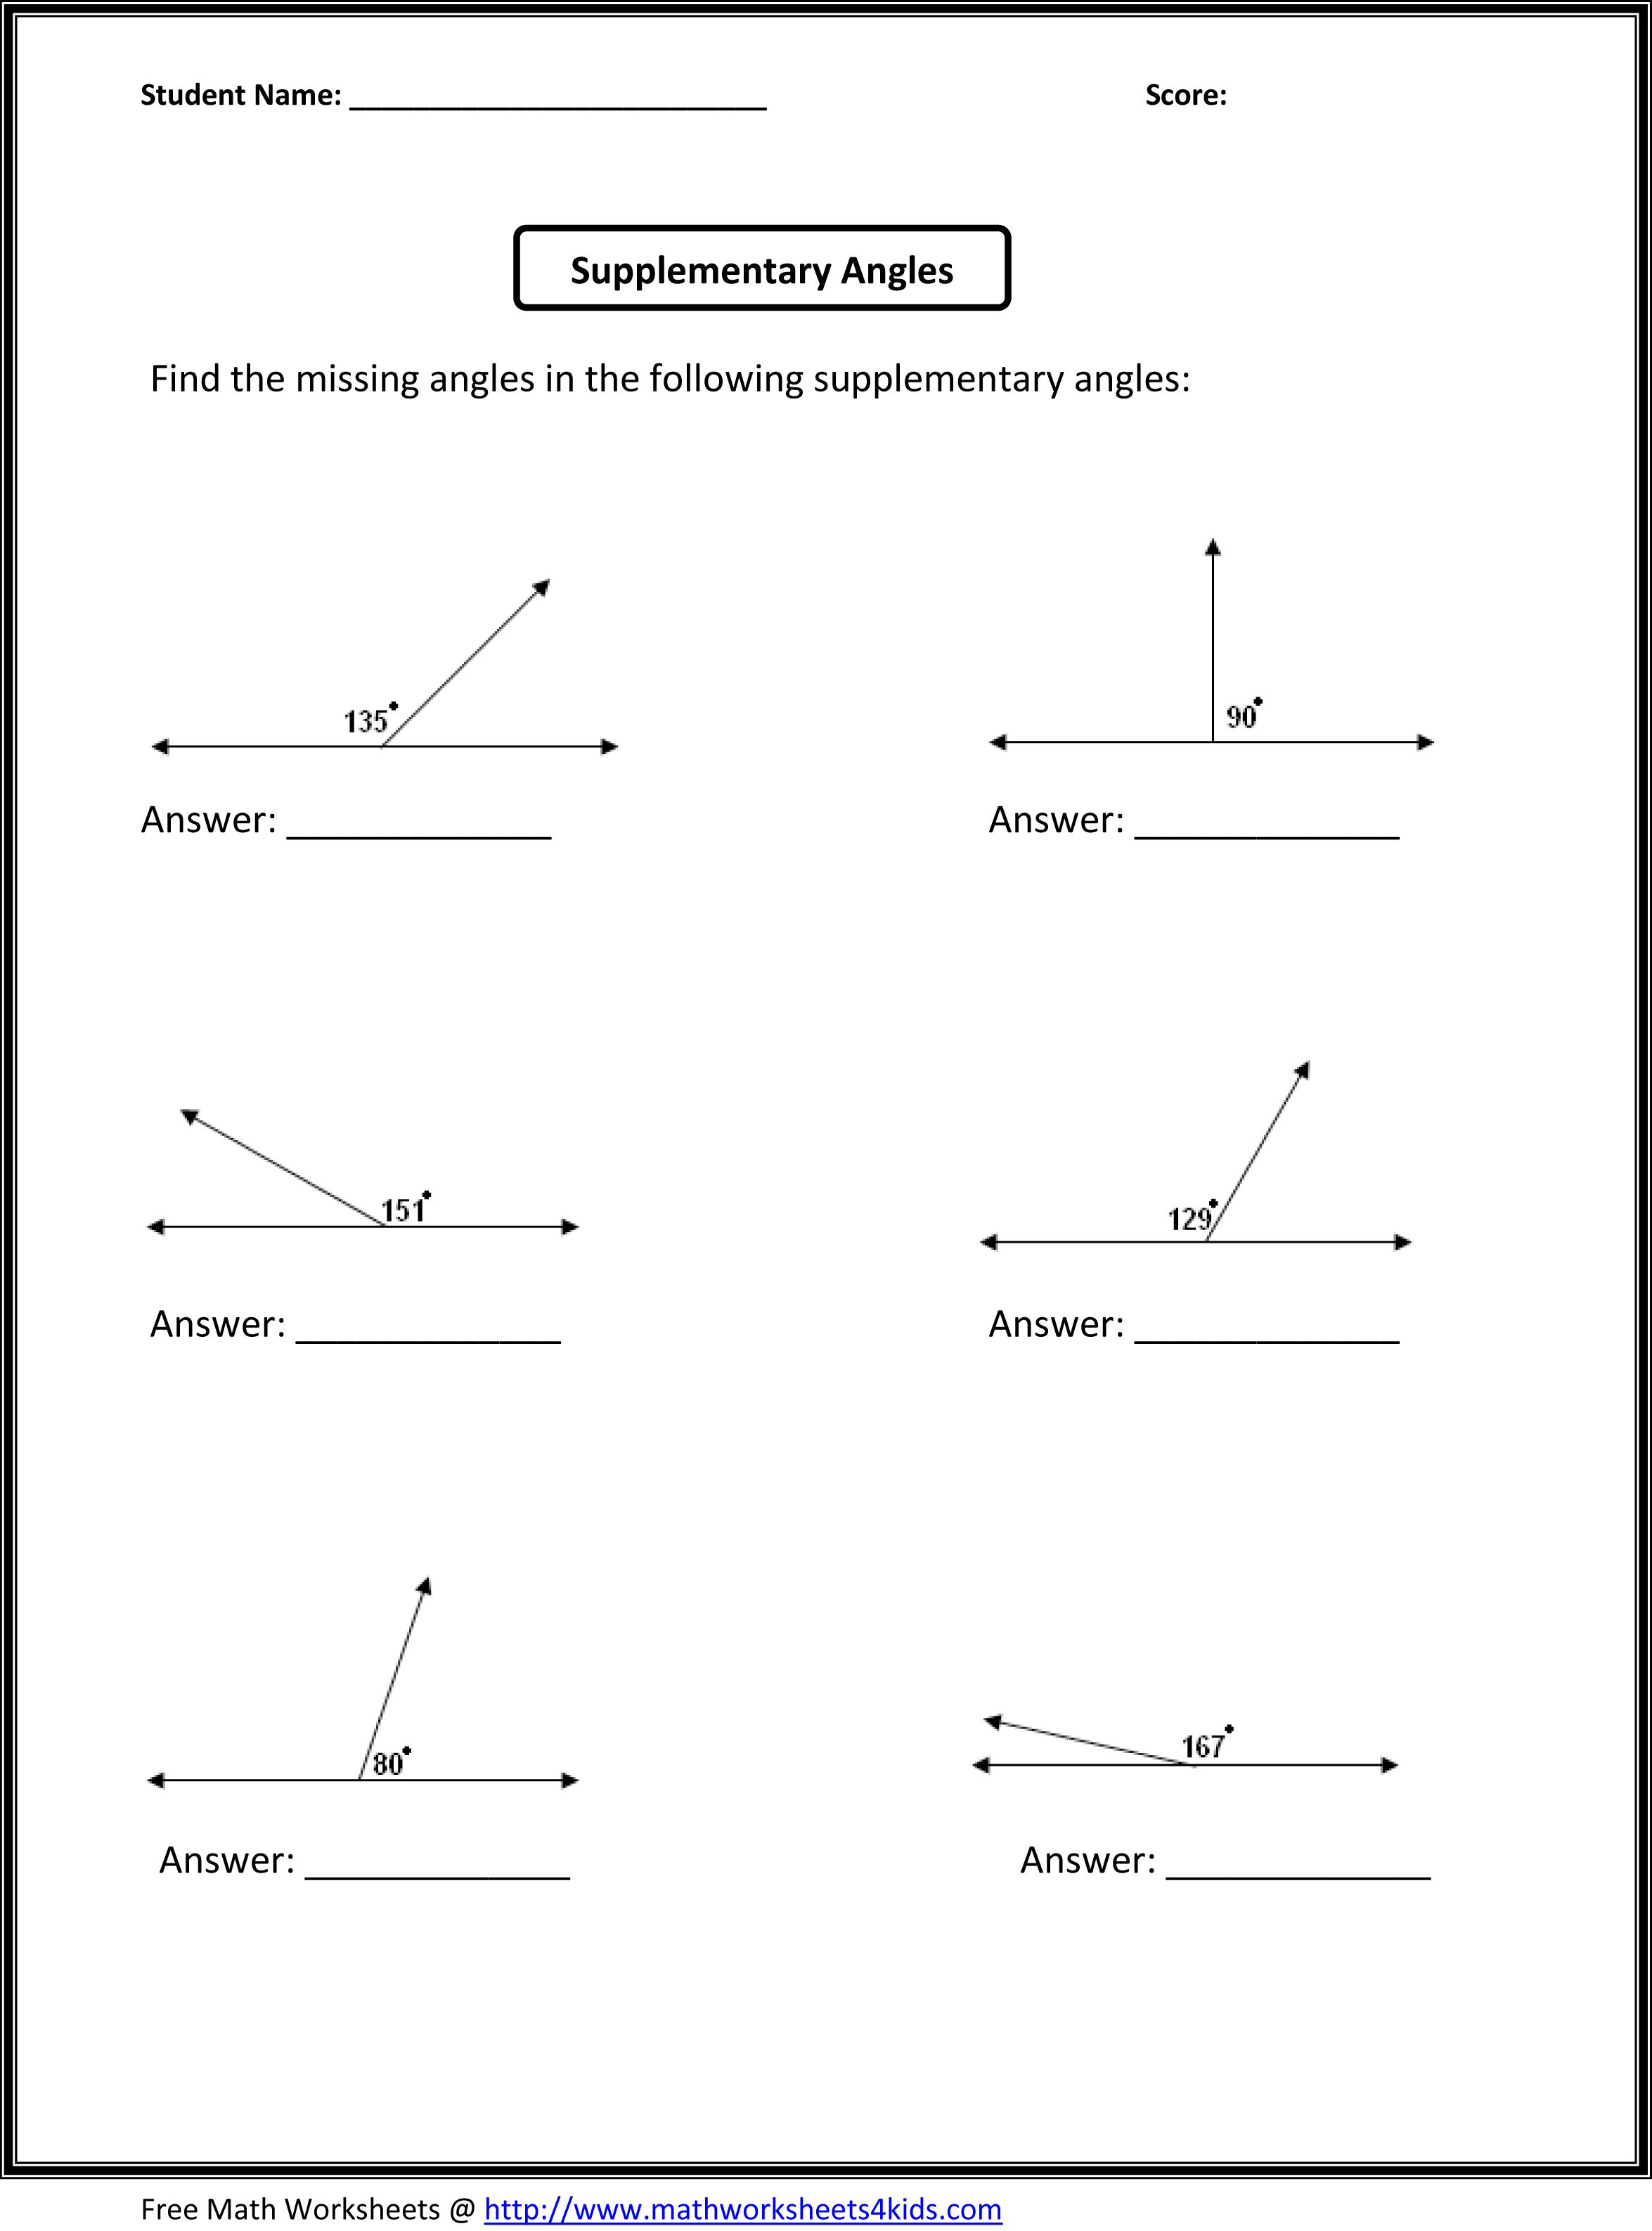 Worksheets Free Math Worksheets 6th Grade supplementary angles classroom madness pinterest math worksheets and math